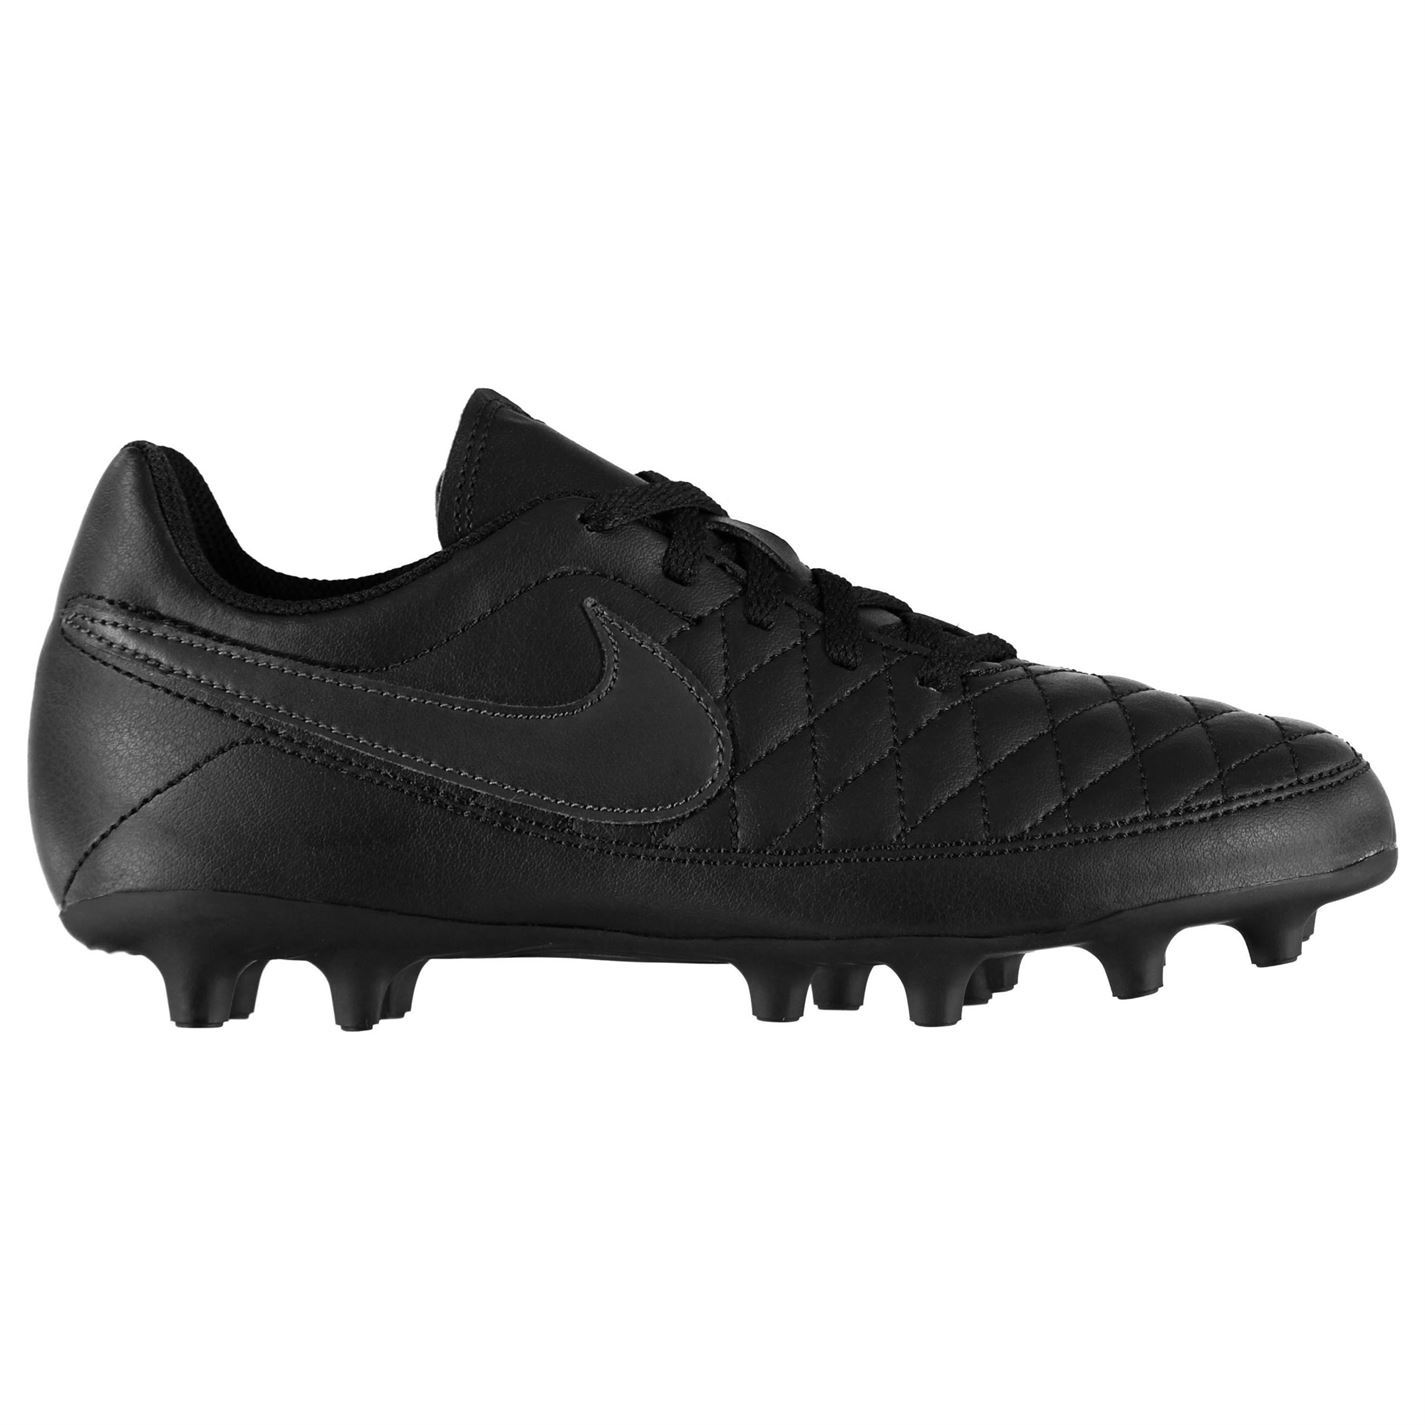 miniature 5 - Nike-majestry-FG-Firm-Ground-Chaussures-De-Football-Enfants-Football-Chaussures-Crampons